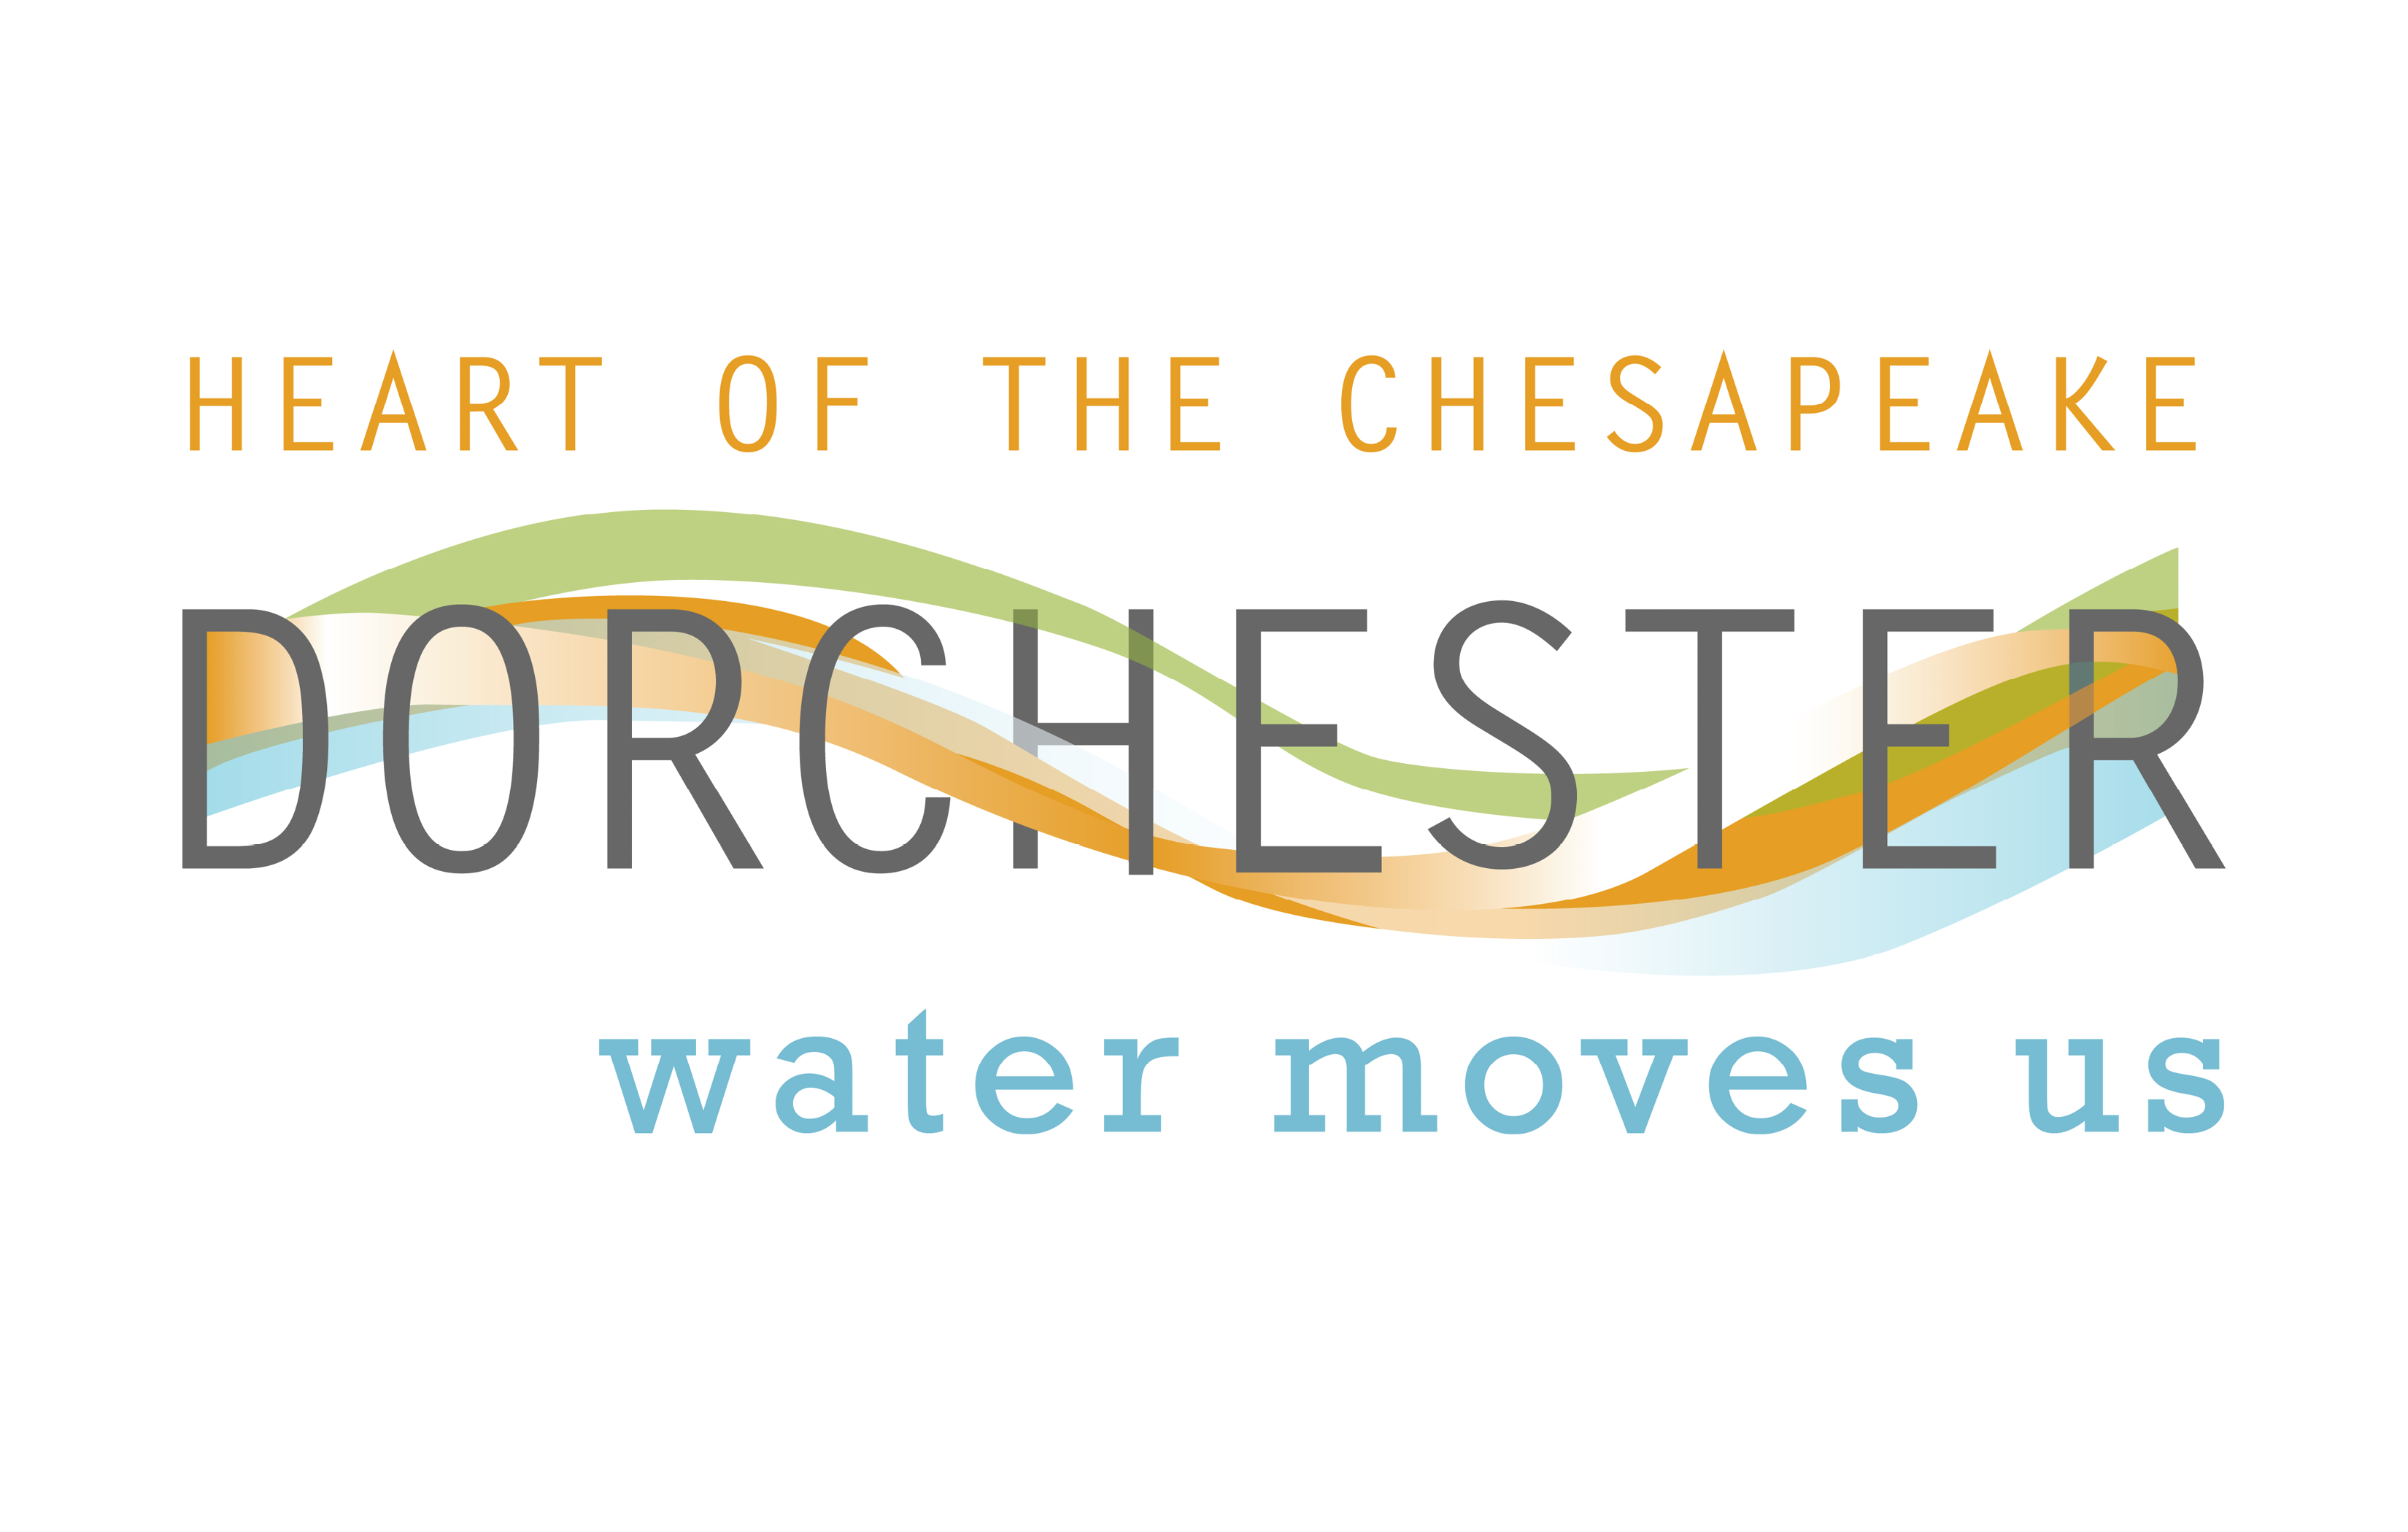 DorchesterTourismLogo+Background